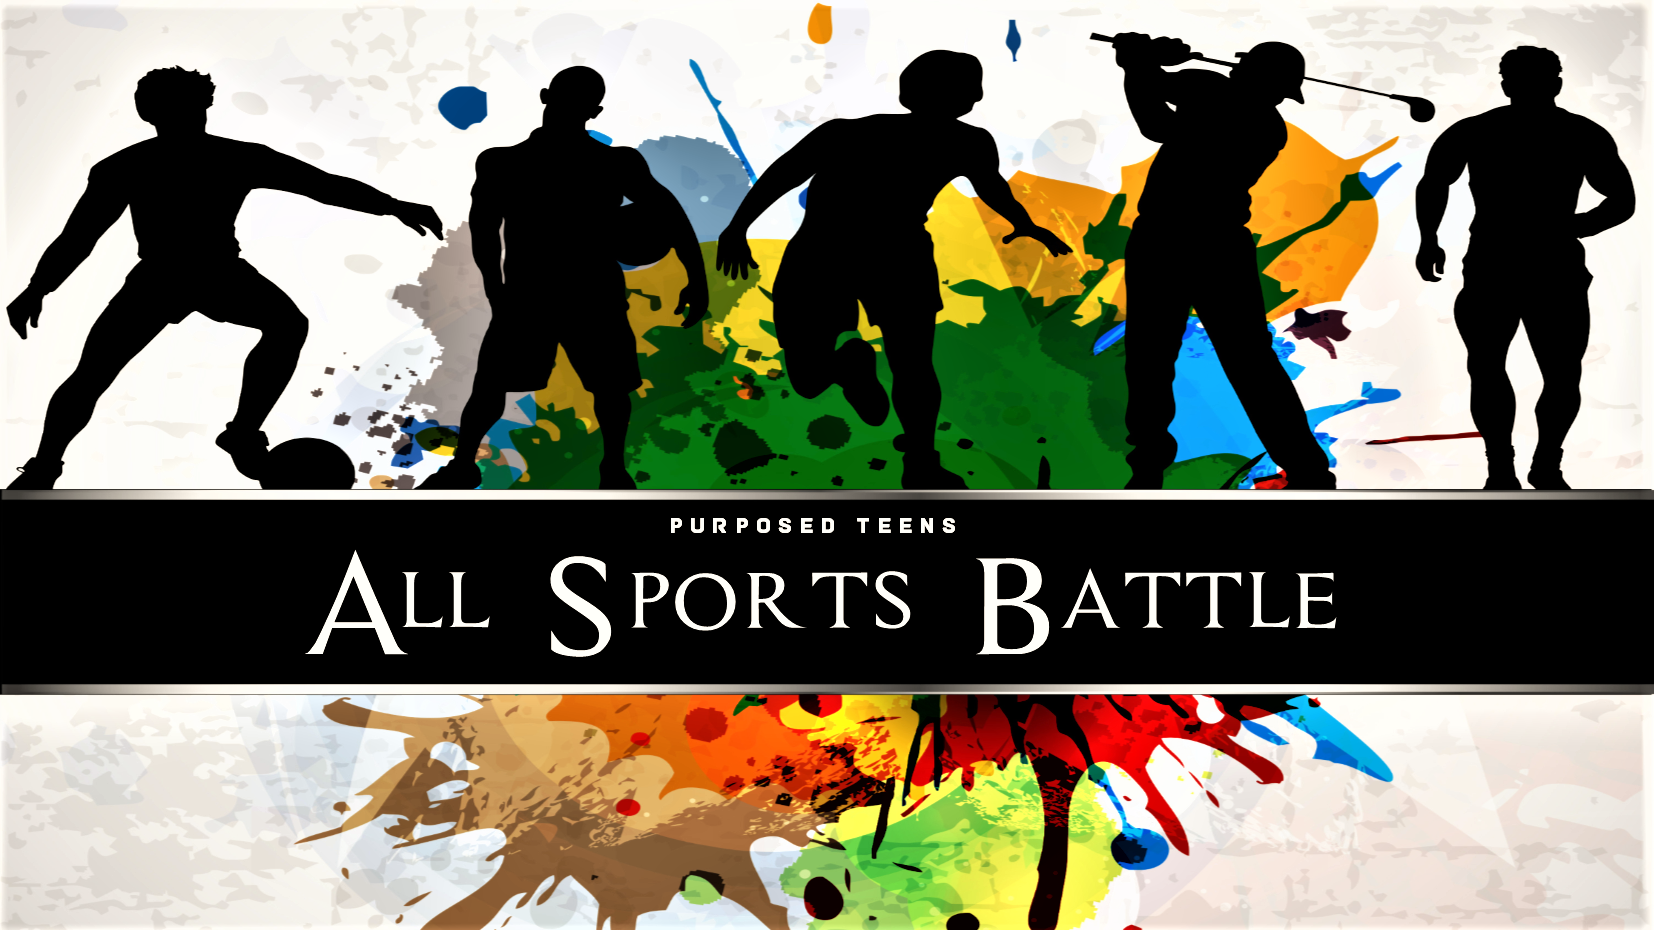 All Sports Battle